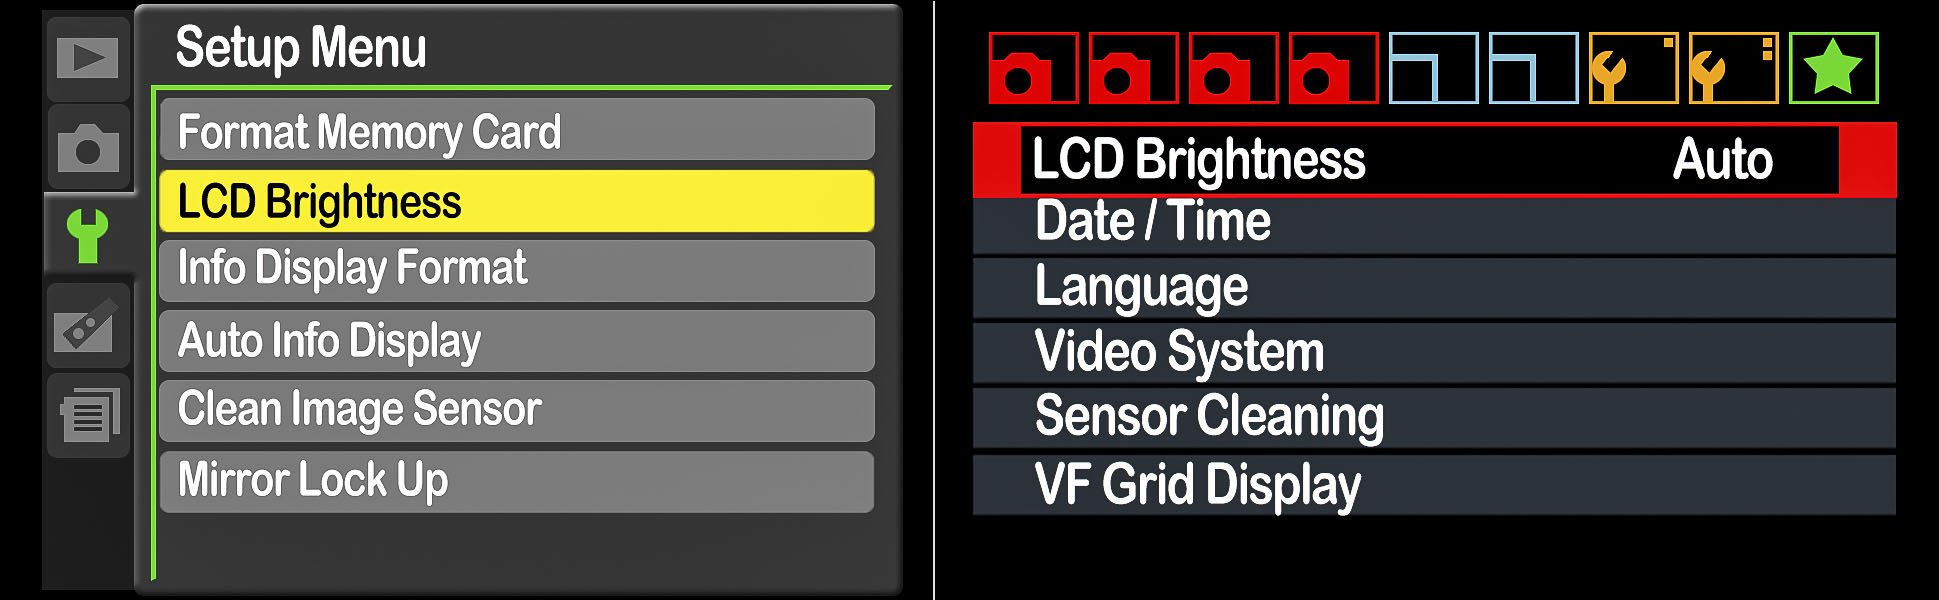 Figure 1. The LCD Brightness settings in Nikon (left) and Canon menus.